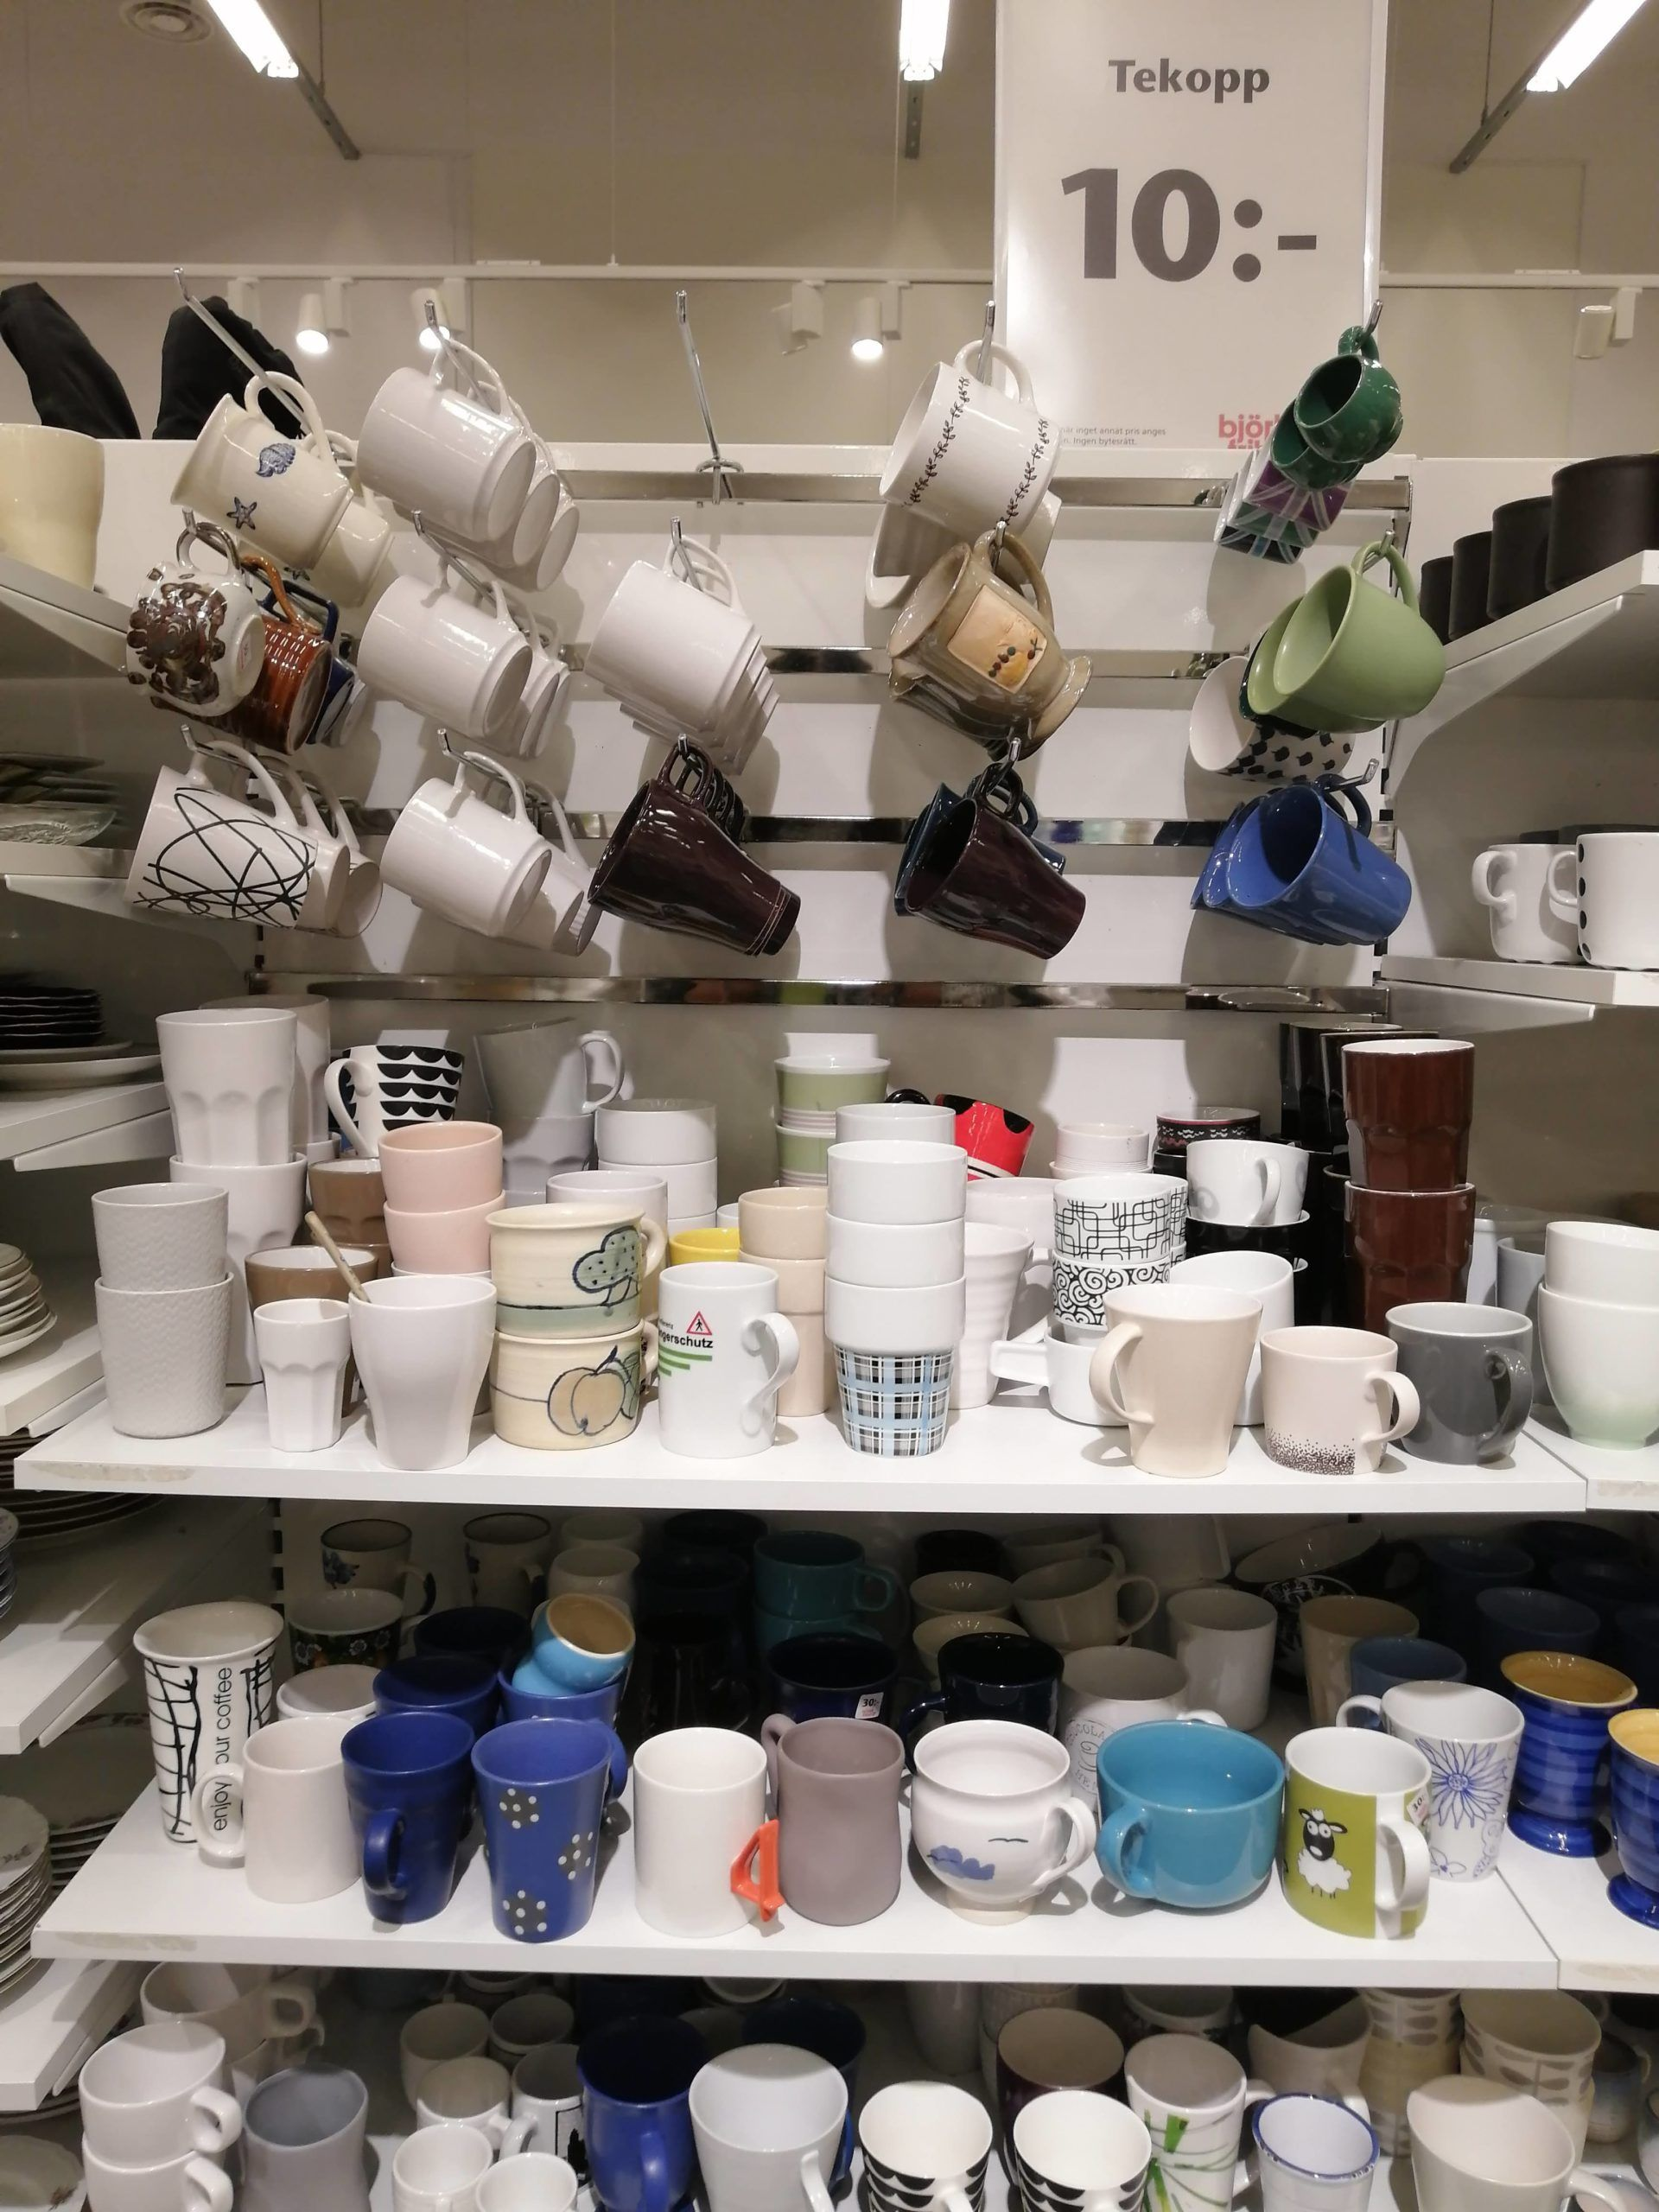 A display of mugs and teacups